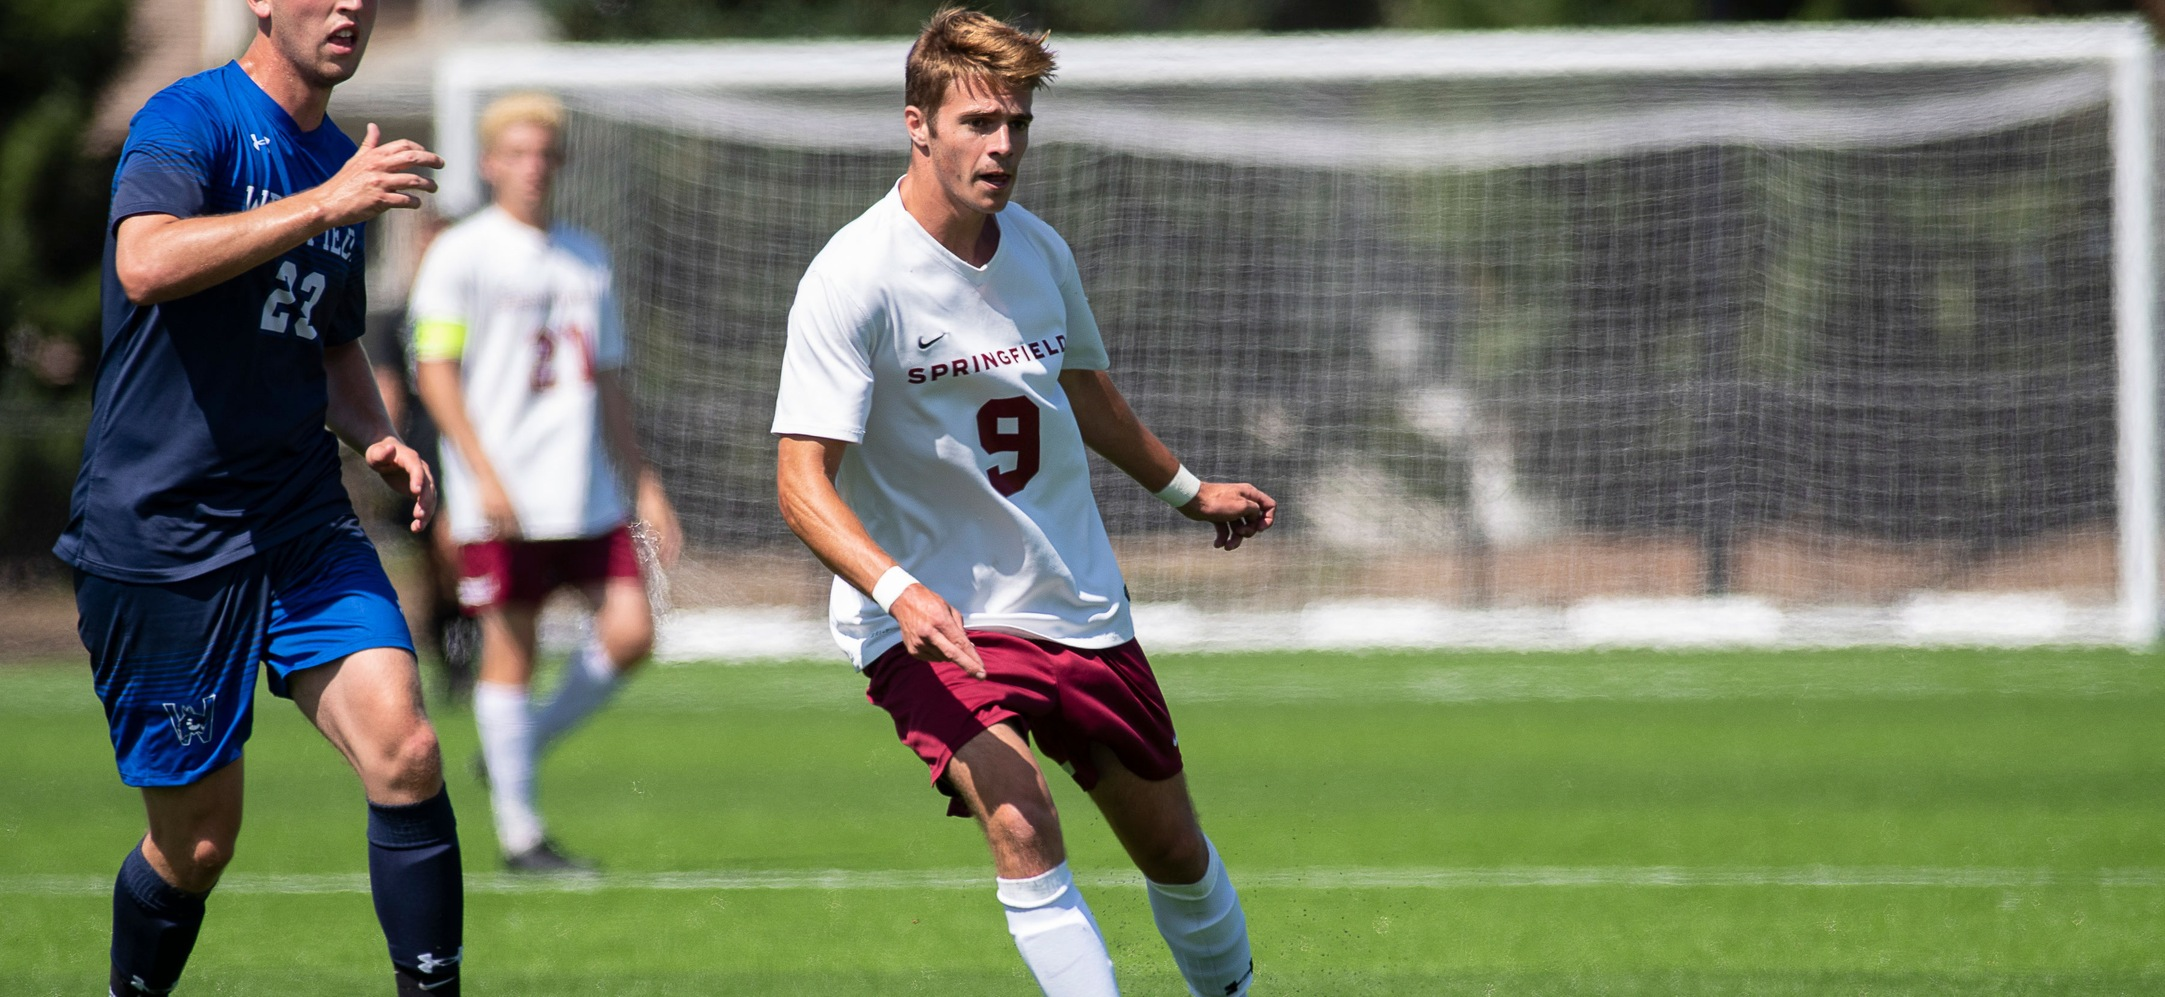 Babson Shuts Out Men's Soccer, 2-0